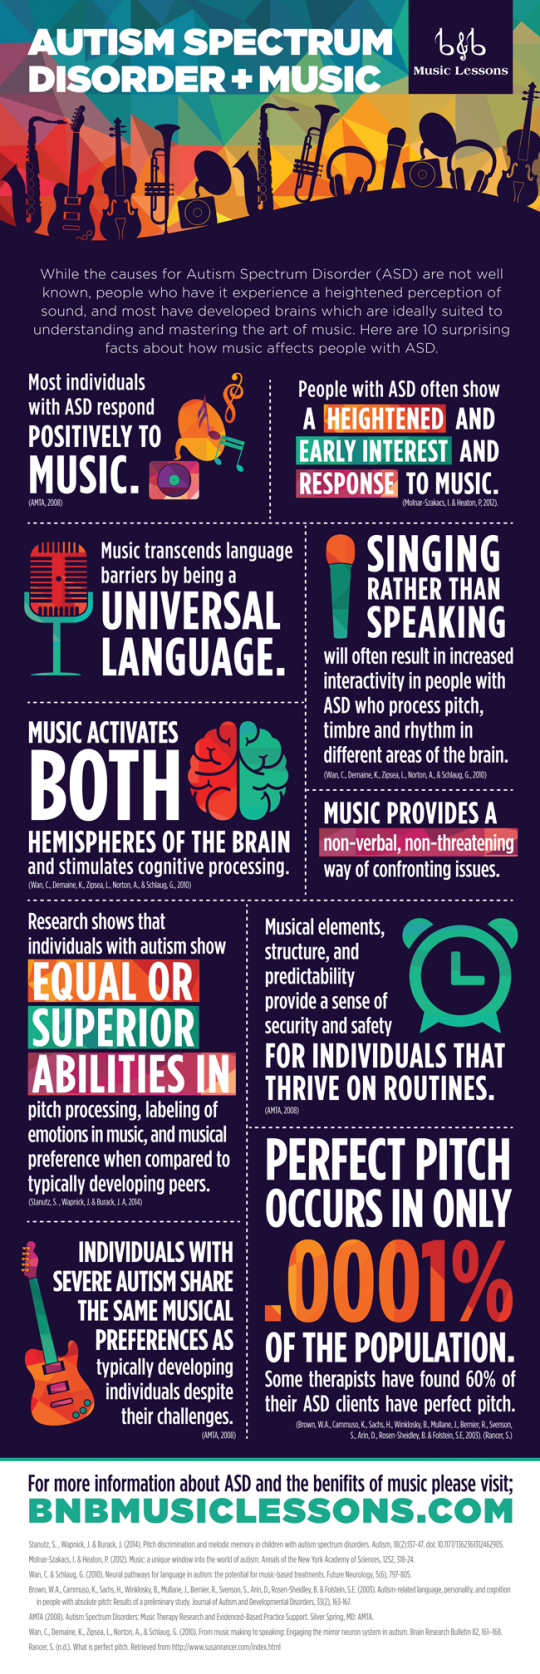 10 Surprising Facts about Autism and Music